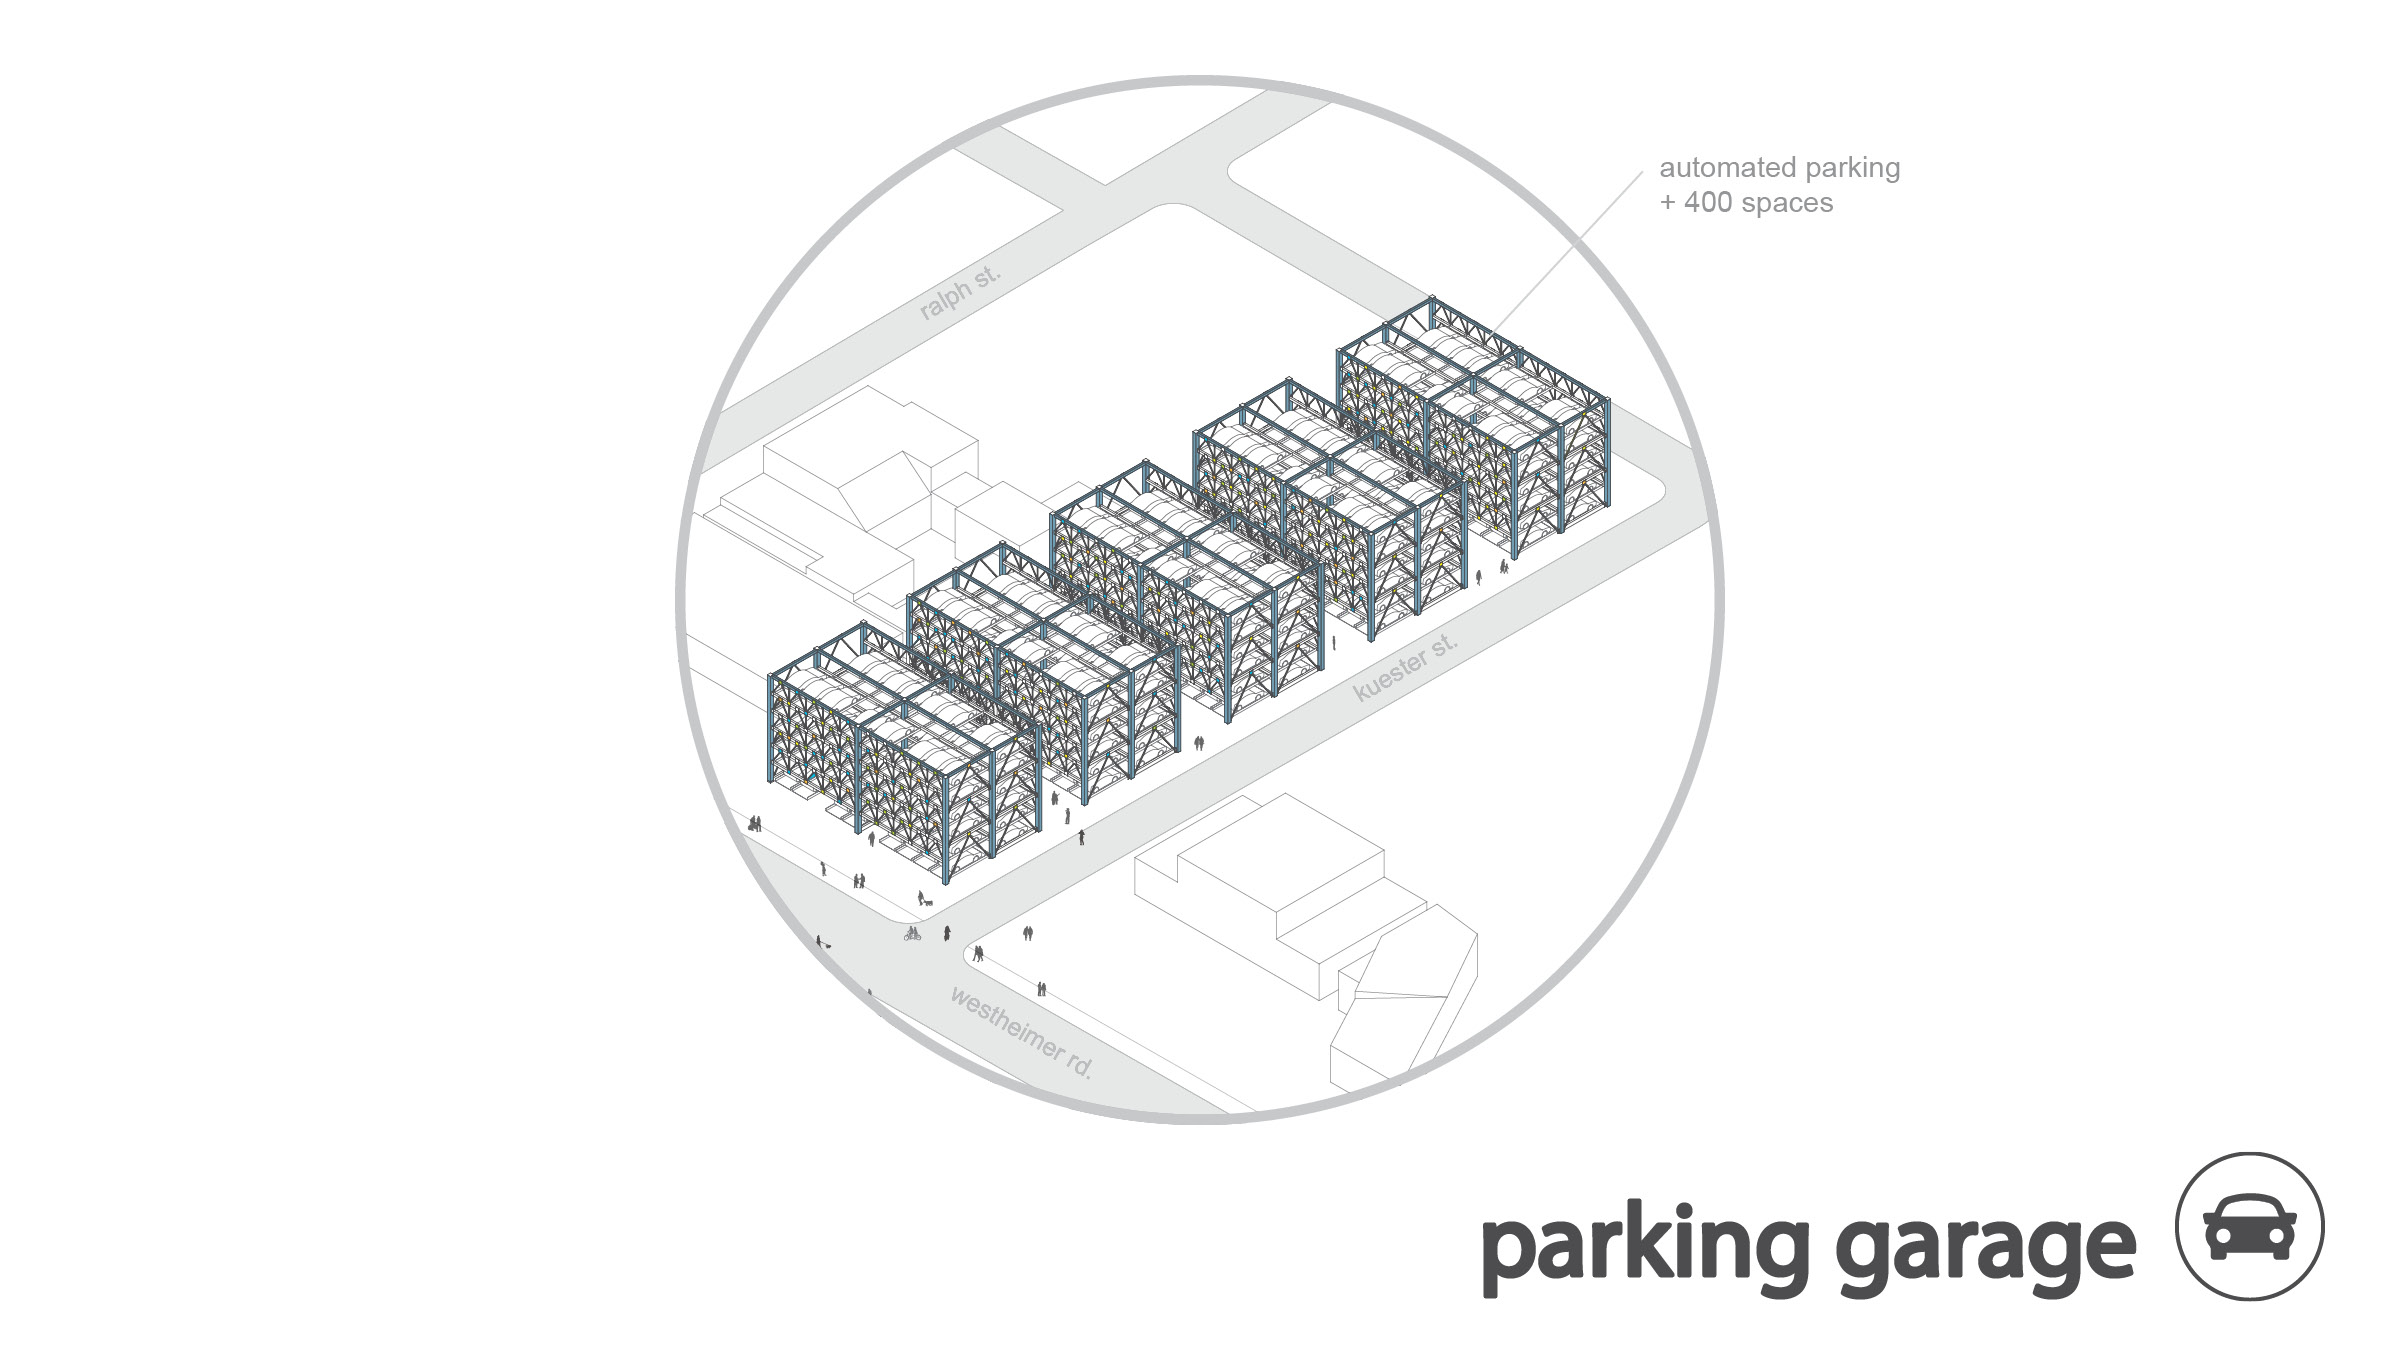 as the idea and implementation of driver-less cars become a reality in the future, lower westheimer will introduce automated parking garages to accommodate the increasing demand of parking spaces